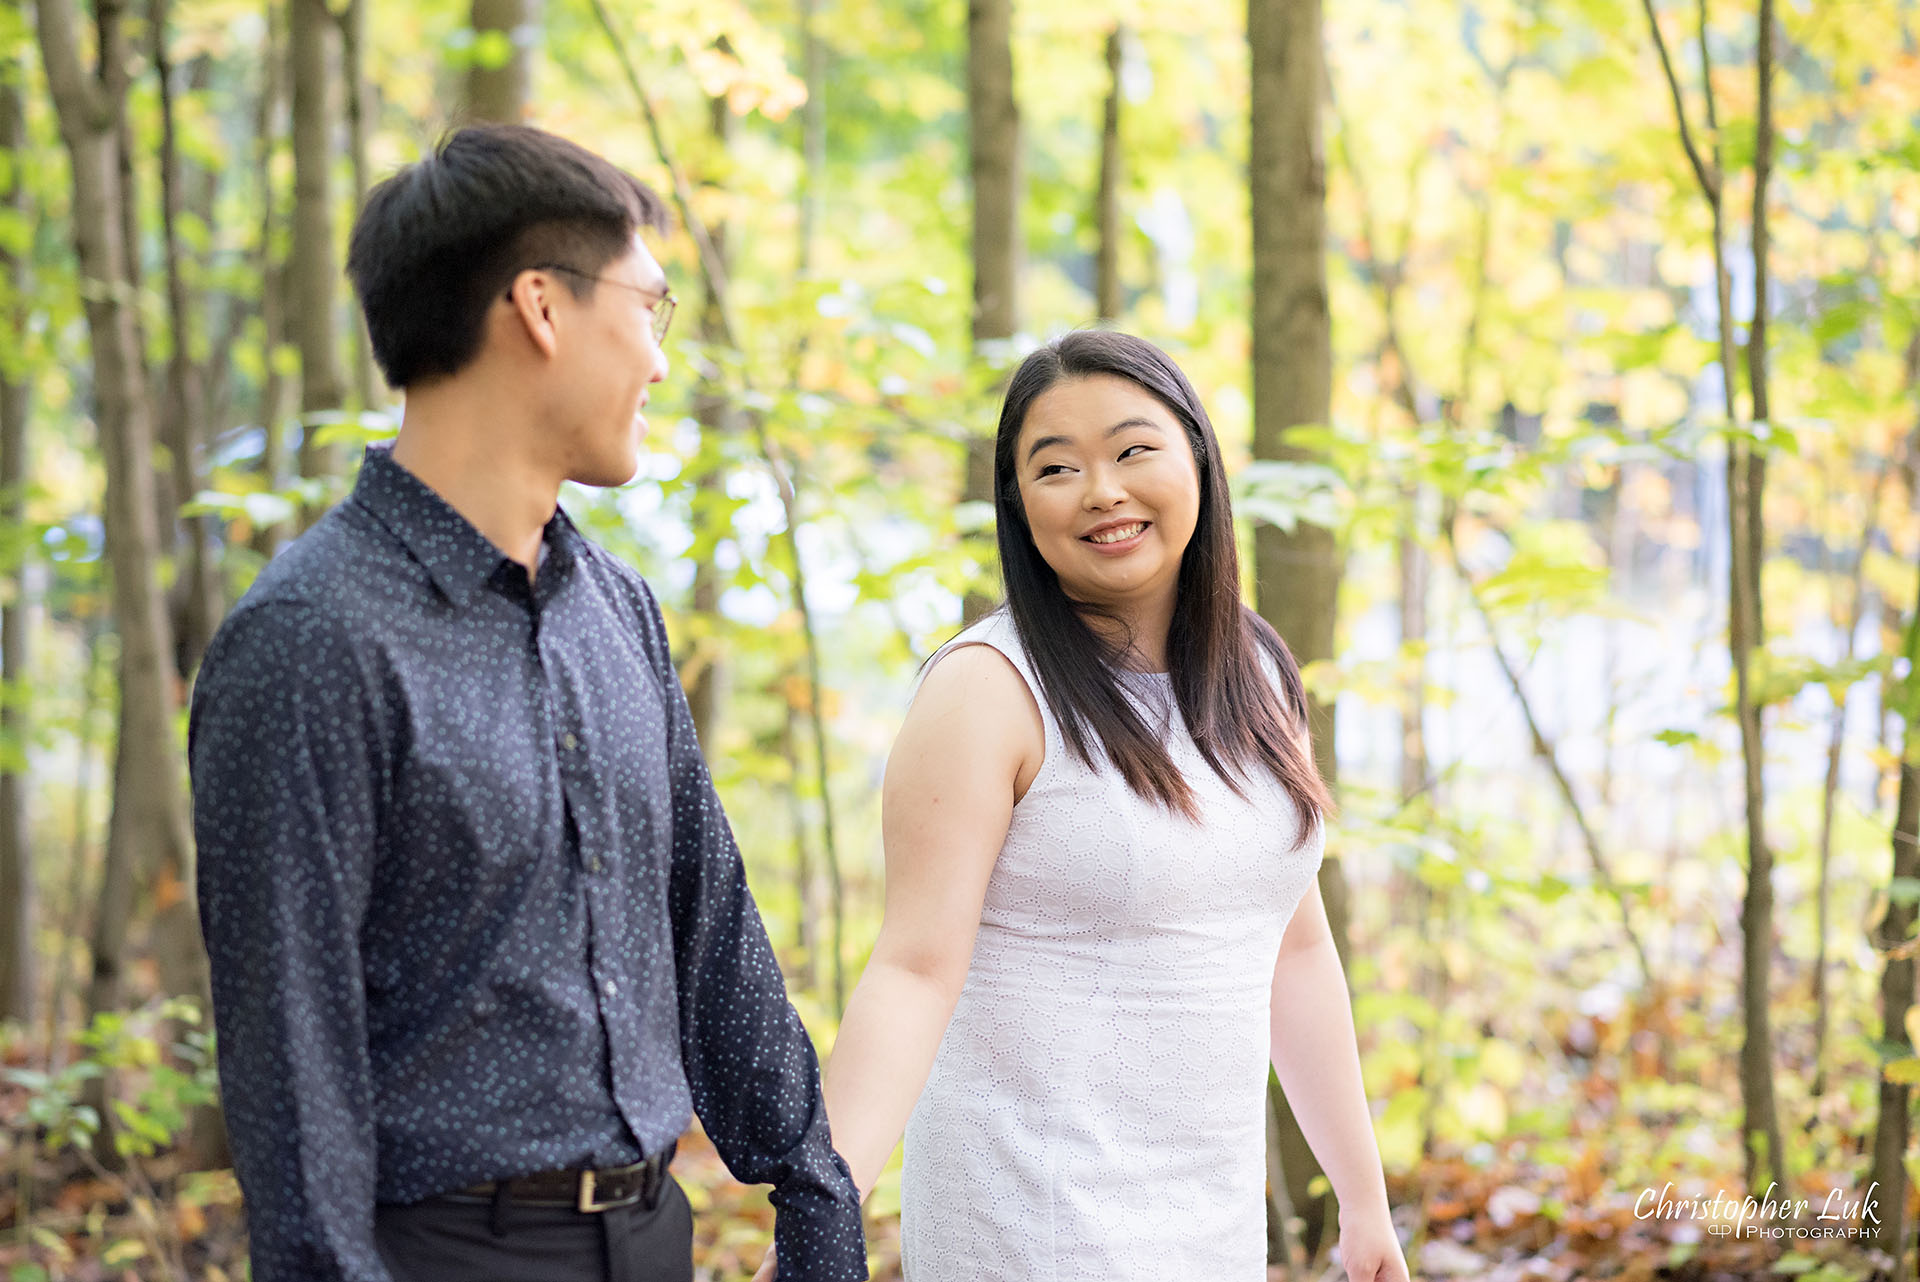 Christopher Luk Toronto Wedding Photographer Stouffville Forest Conservation Park Engagement Session Candid Natural Photojournalistic Bride Groom Walking Together Pond Autumn Fall Leaves